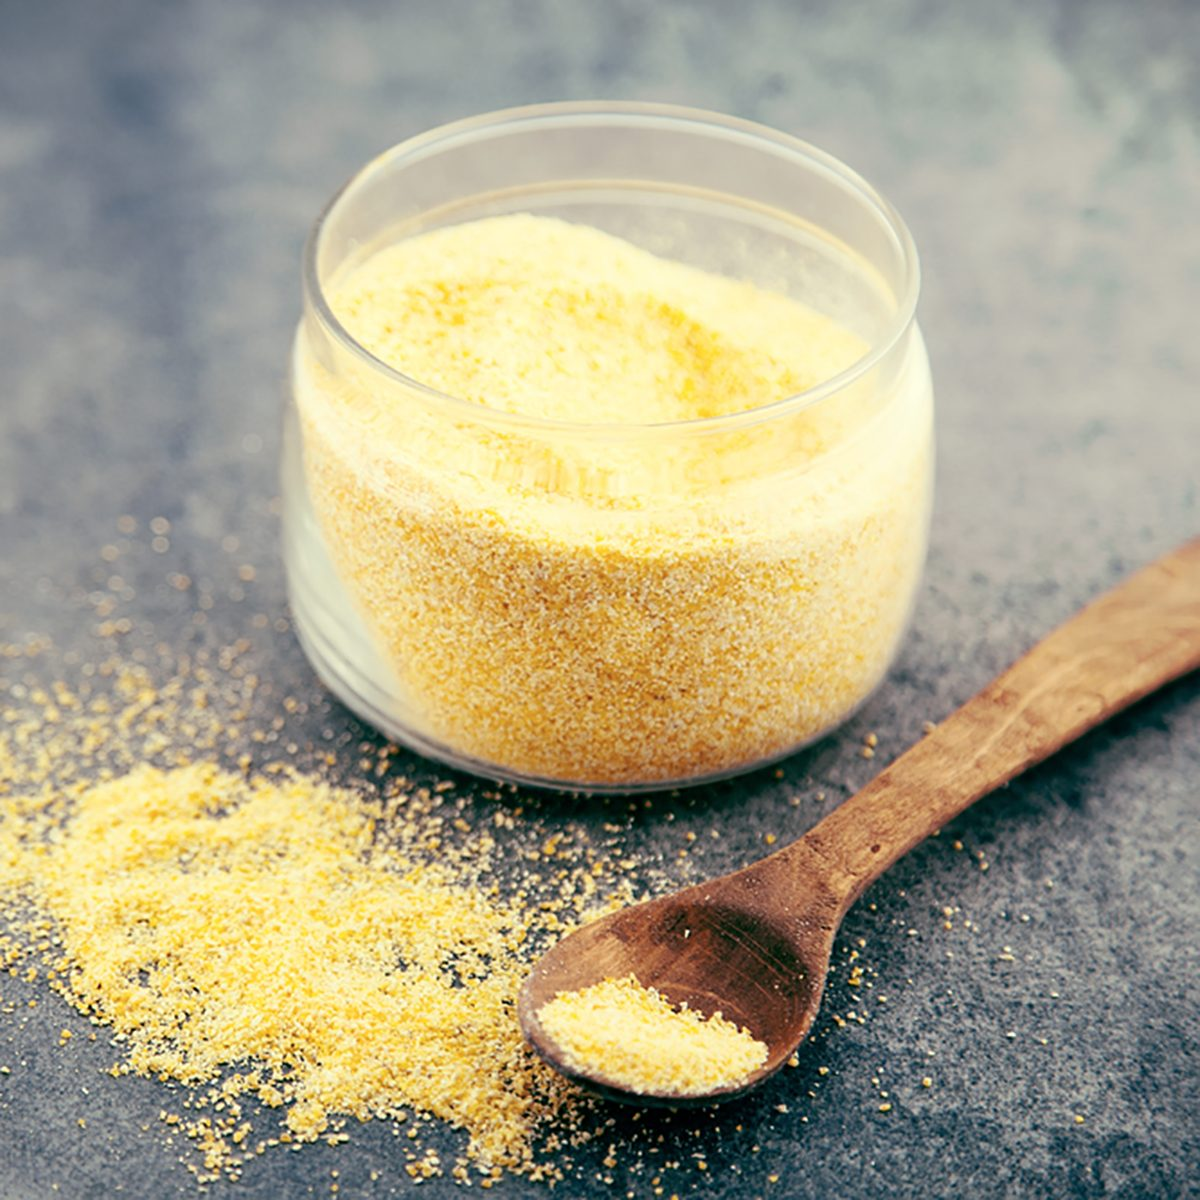 Yellow corn flour in a glass jar on a rustic table.